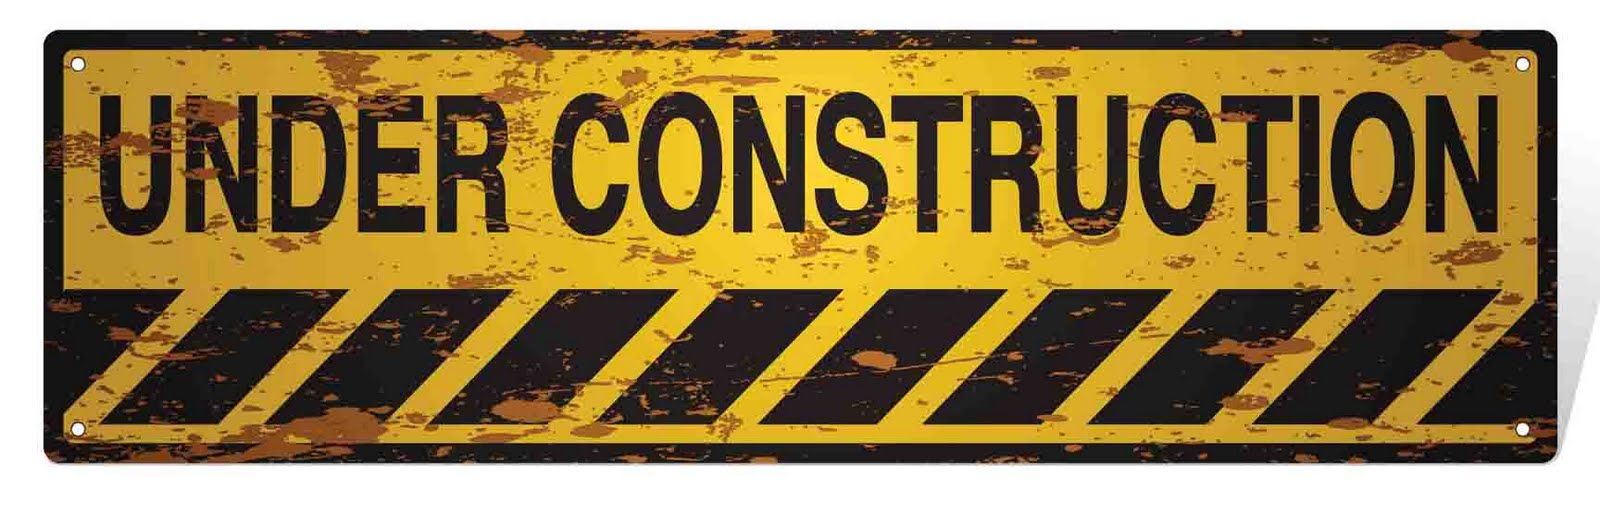 Photo of City Construction Projects for July 2 through July 8